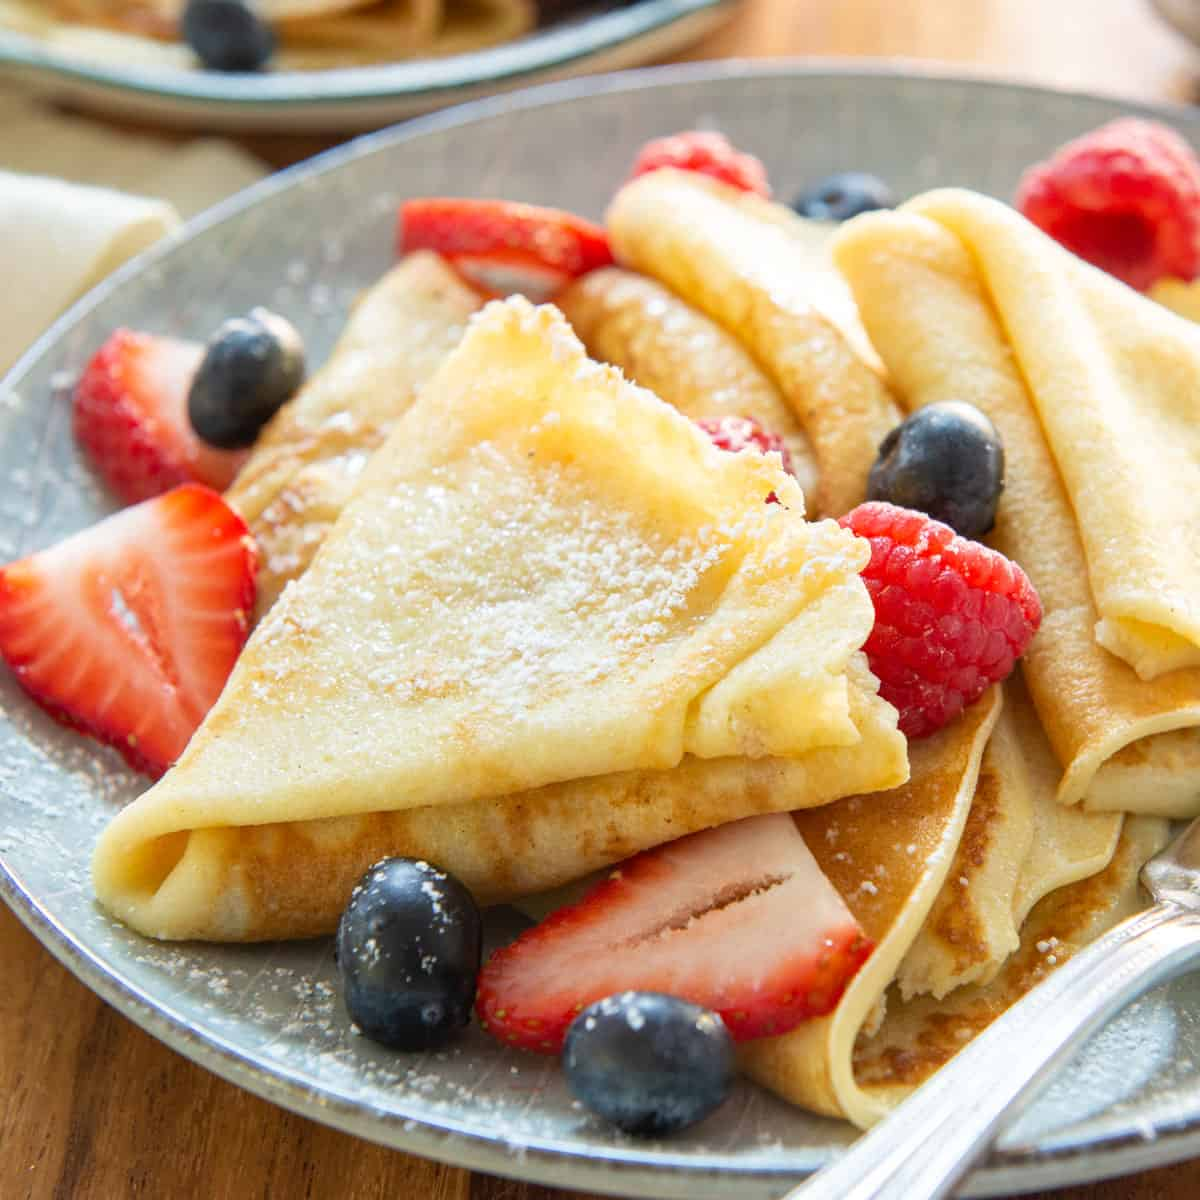 Homemade Crepes On Blue Plate with Berries